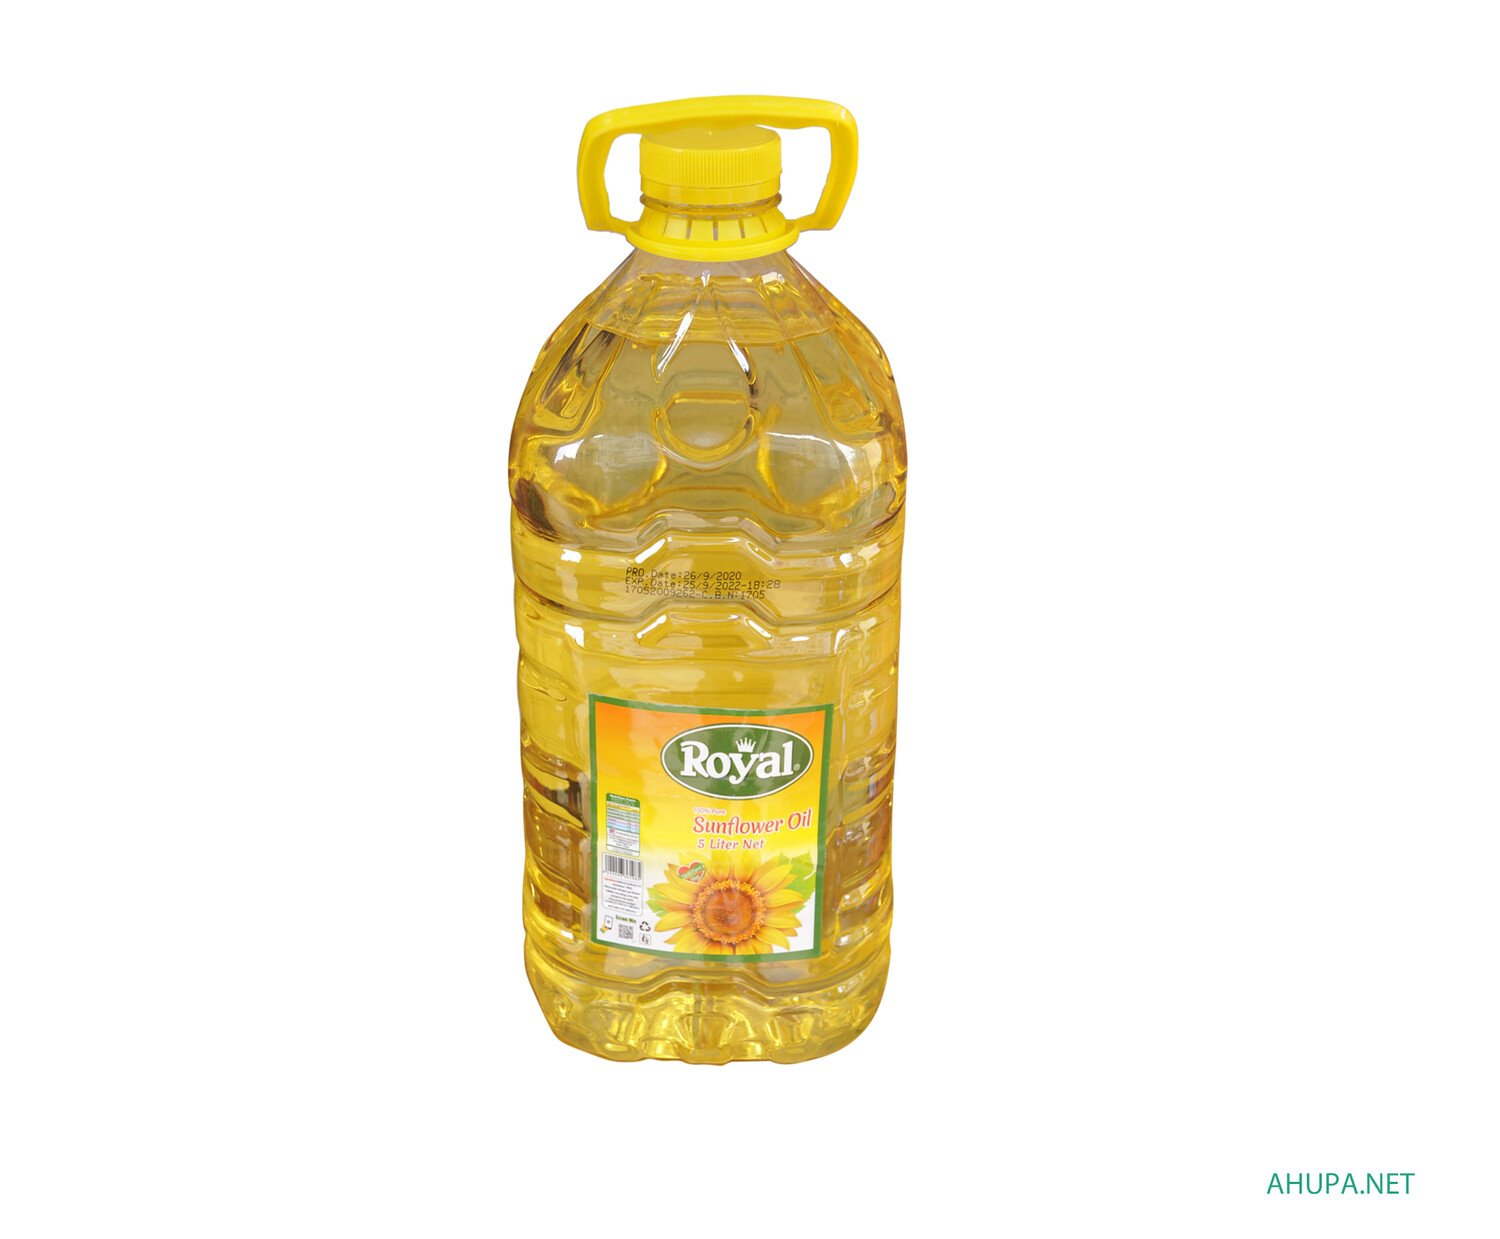 Royal Sunflower oil